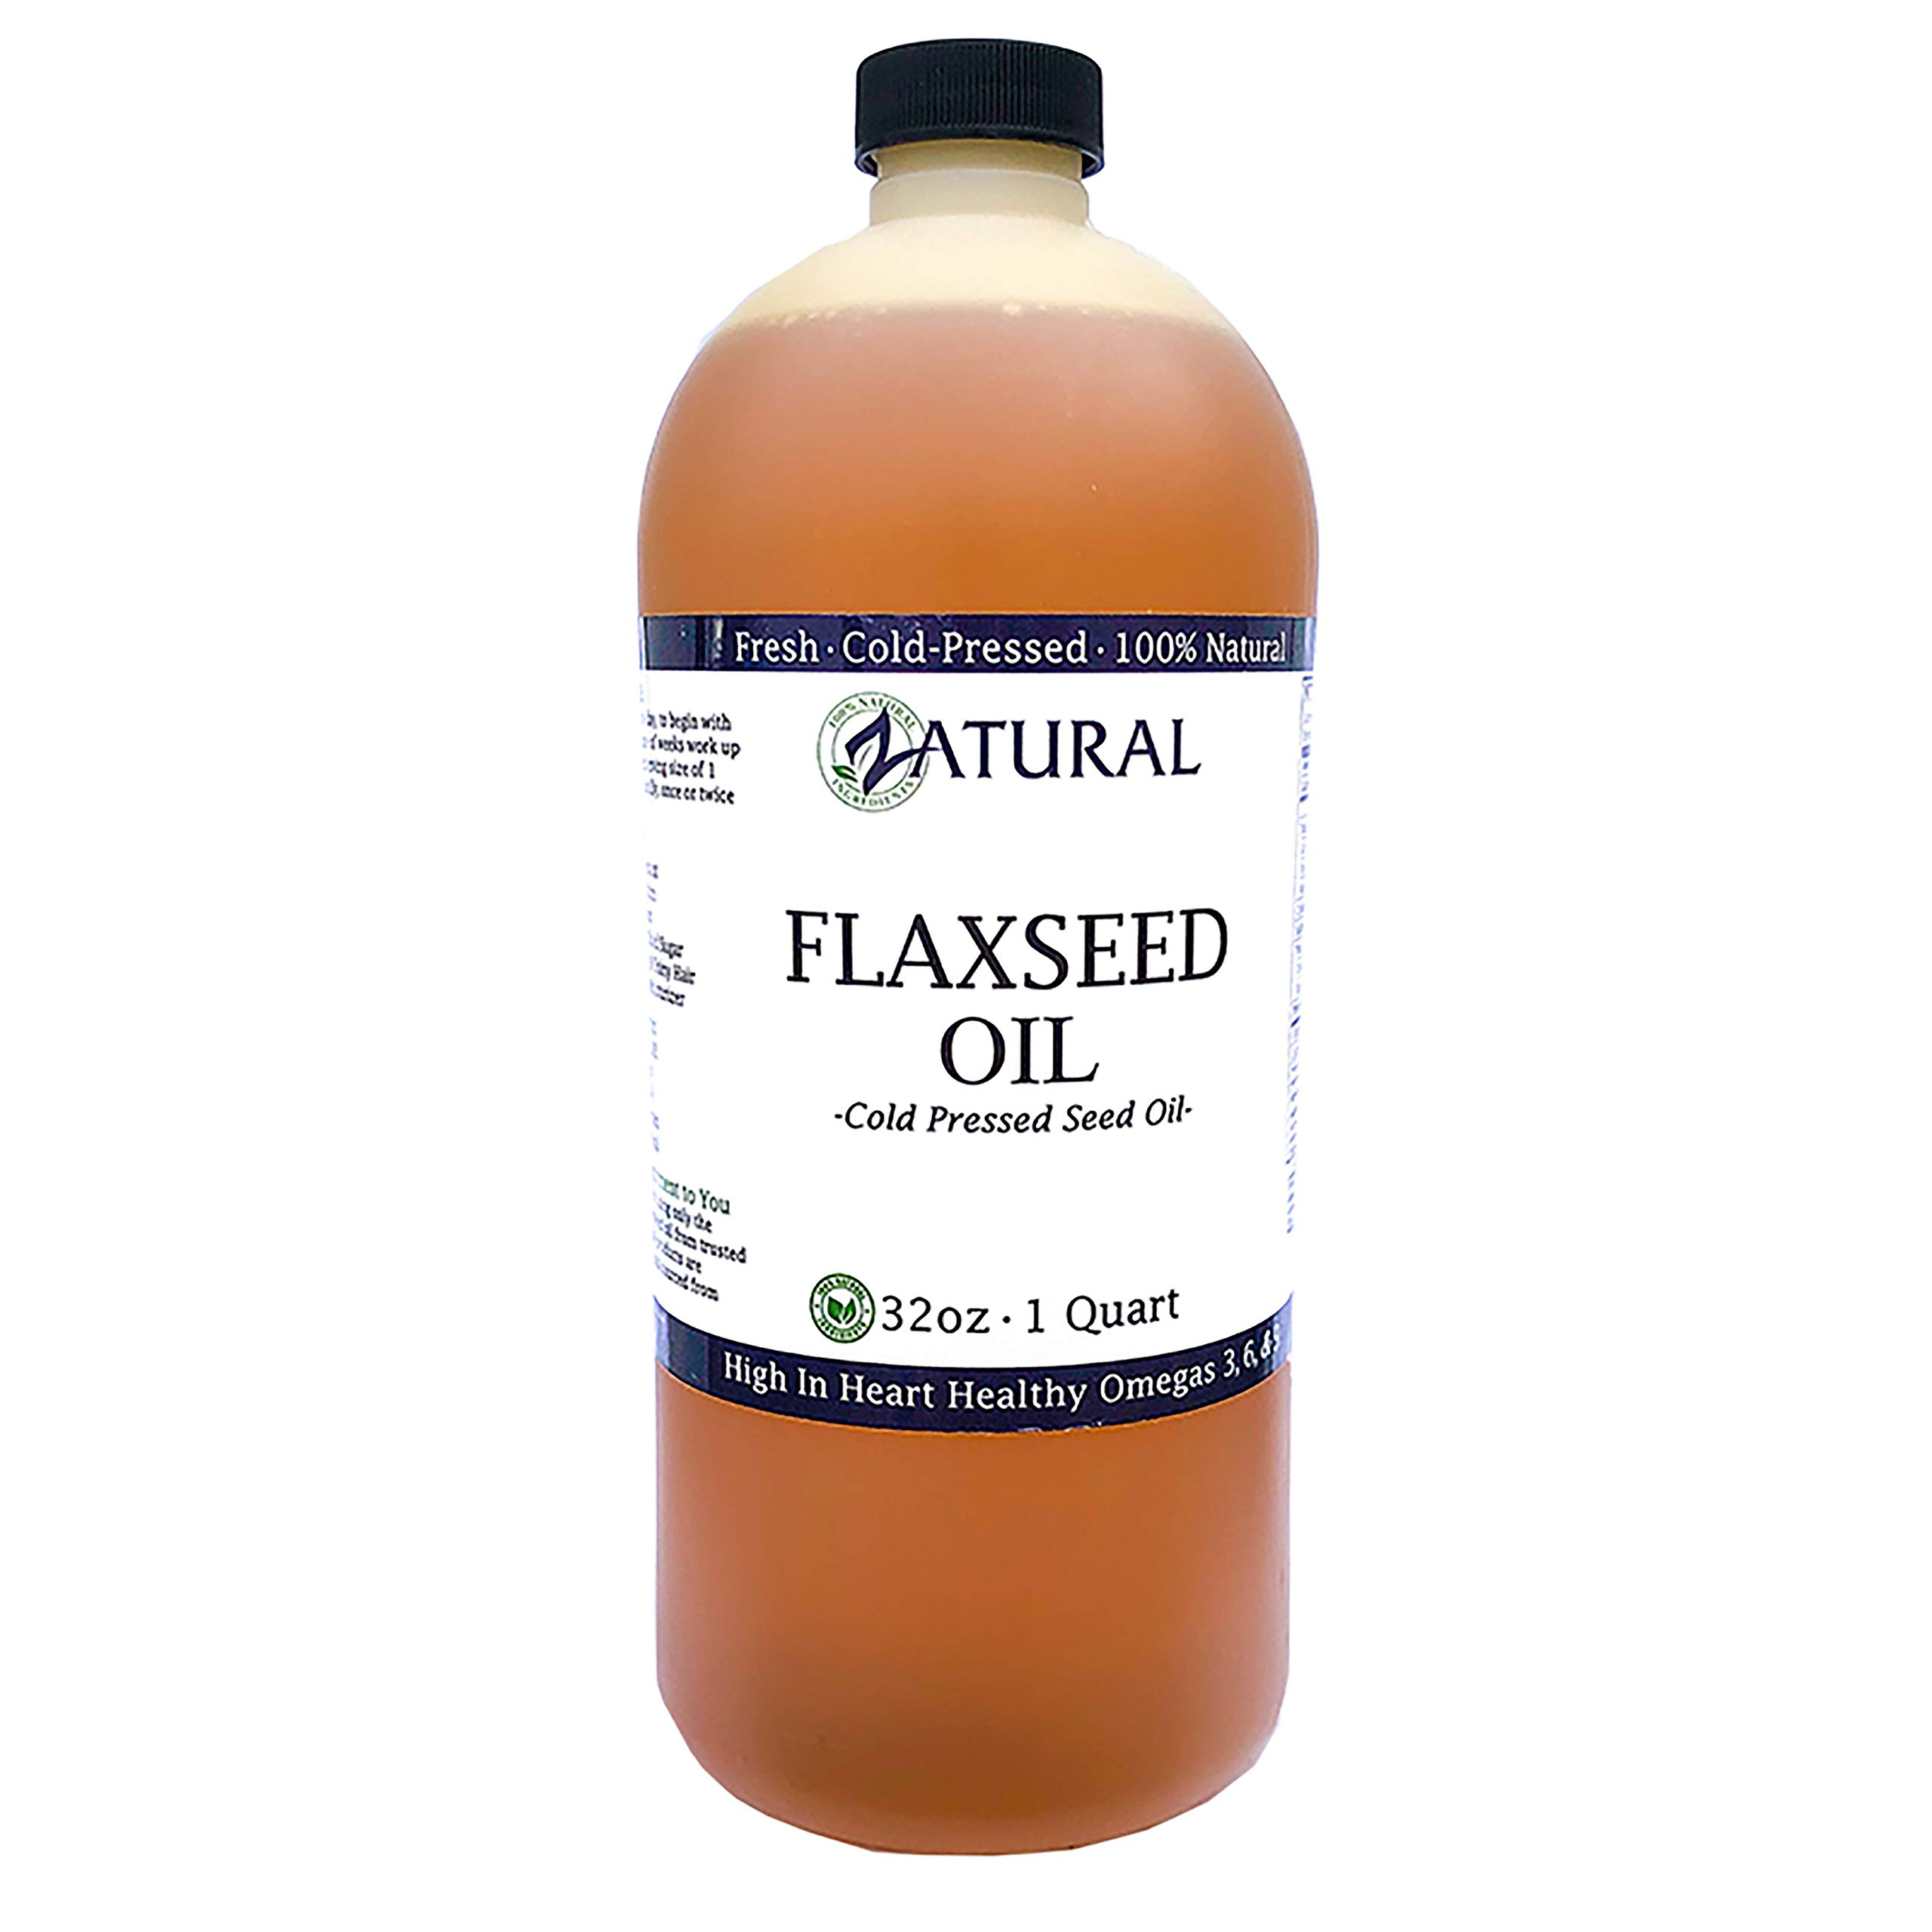 FlaxSeed Oil - 100% Pure Flax Seed Oil - 0 Additives - 0 Fillers - Cold Pressed - Unrefined (32 Ounce)